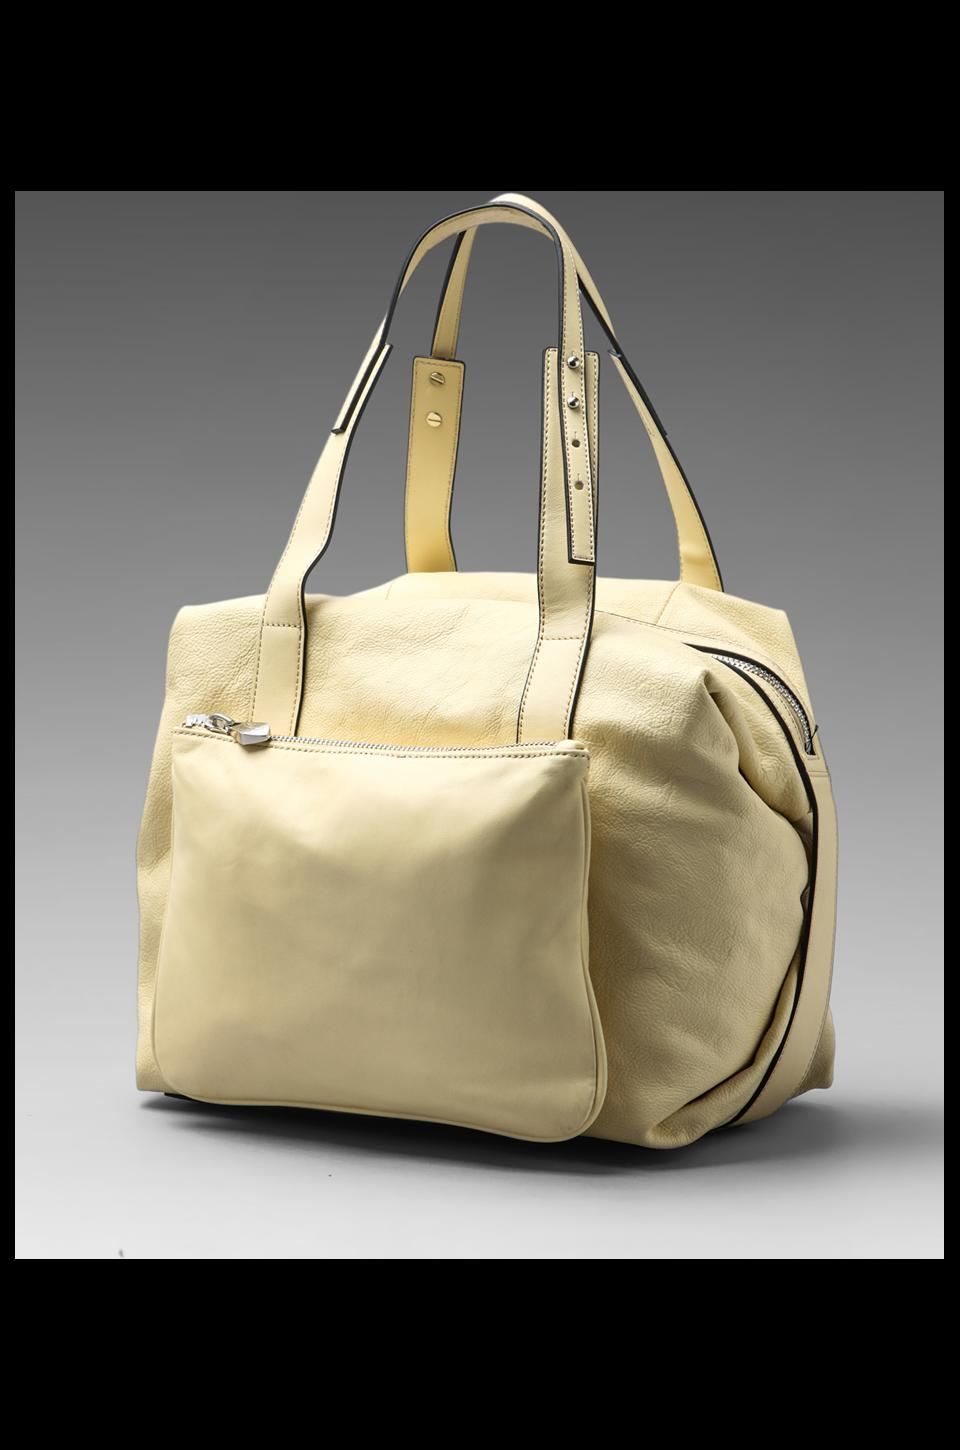 Pour La Victoire Arken City Satchel in Butter